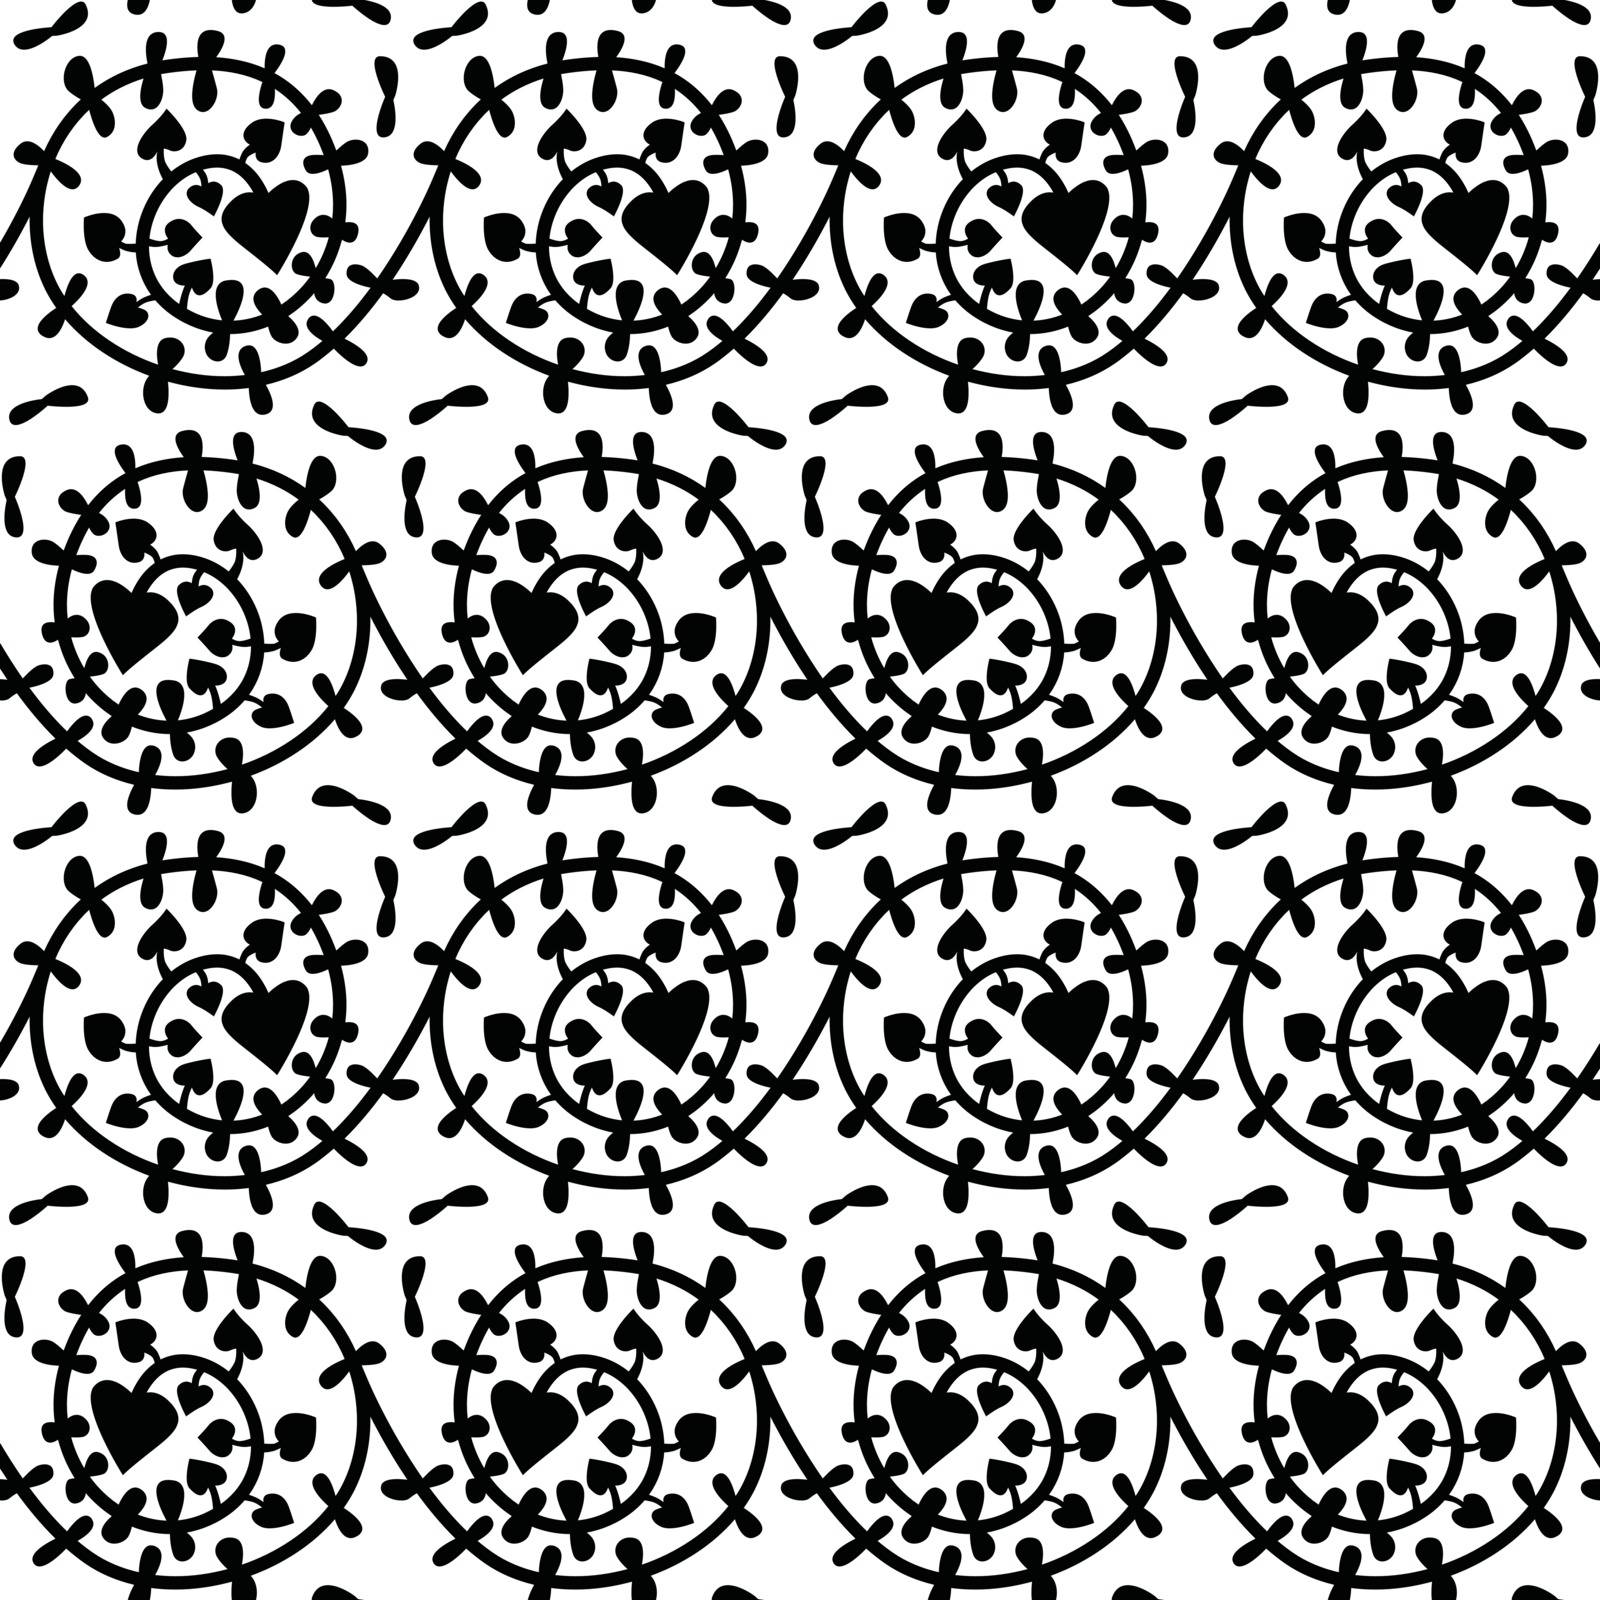 Seamless illustrated pattern made of illustrated black floral element on white